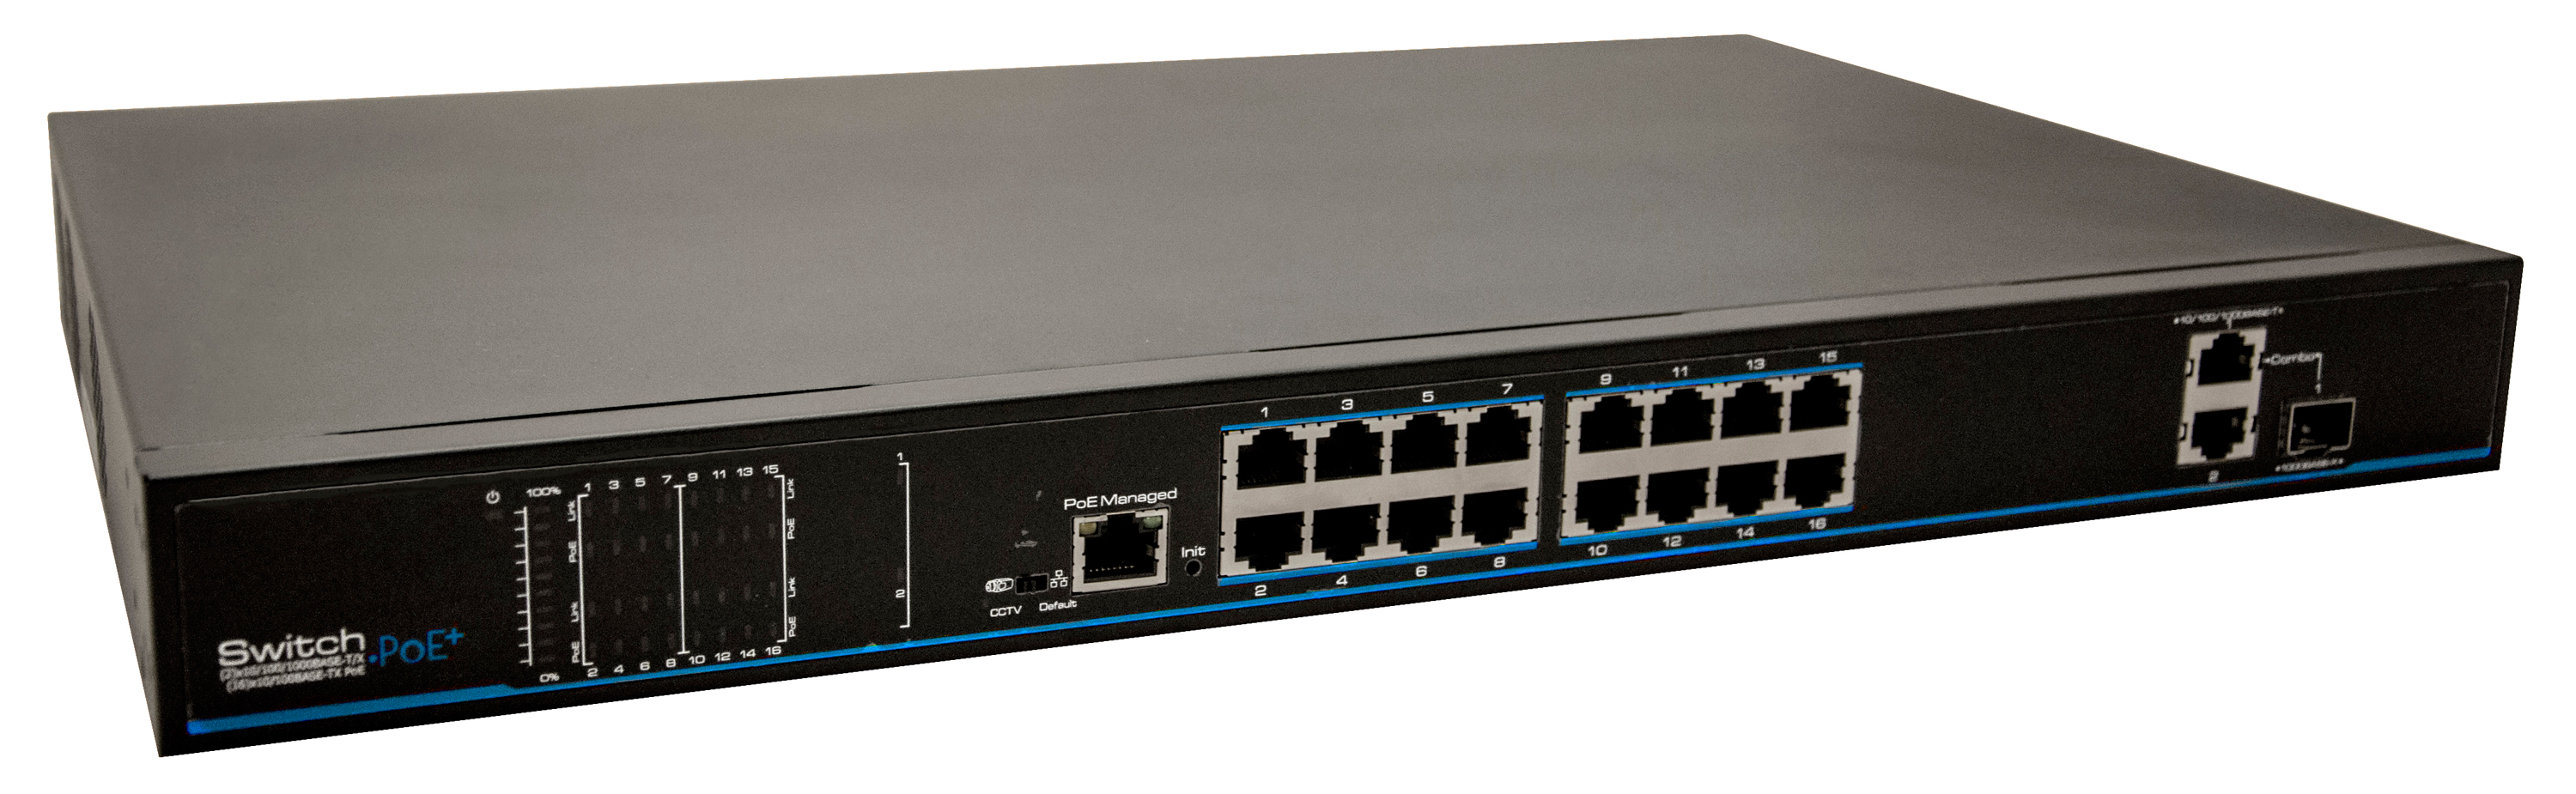 High Powered 16 Port PoE Switch